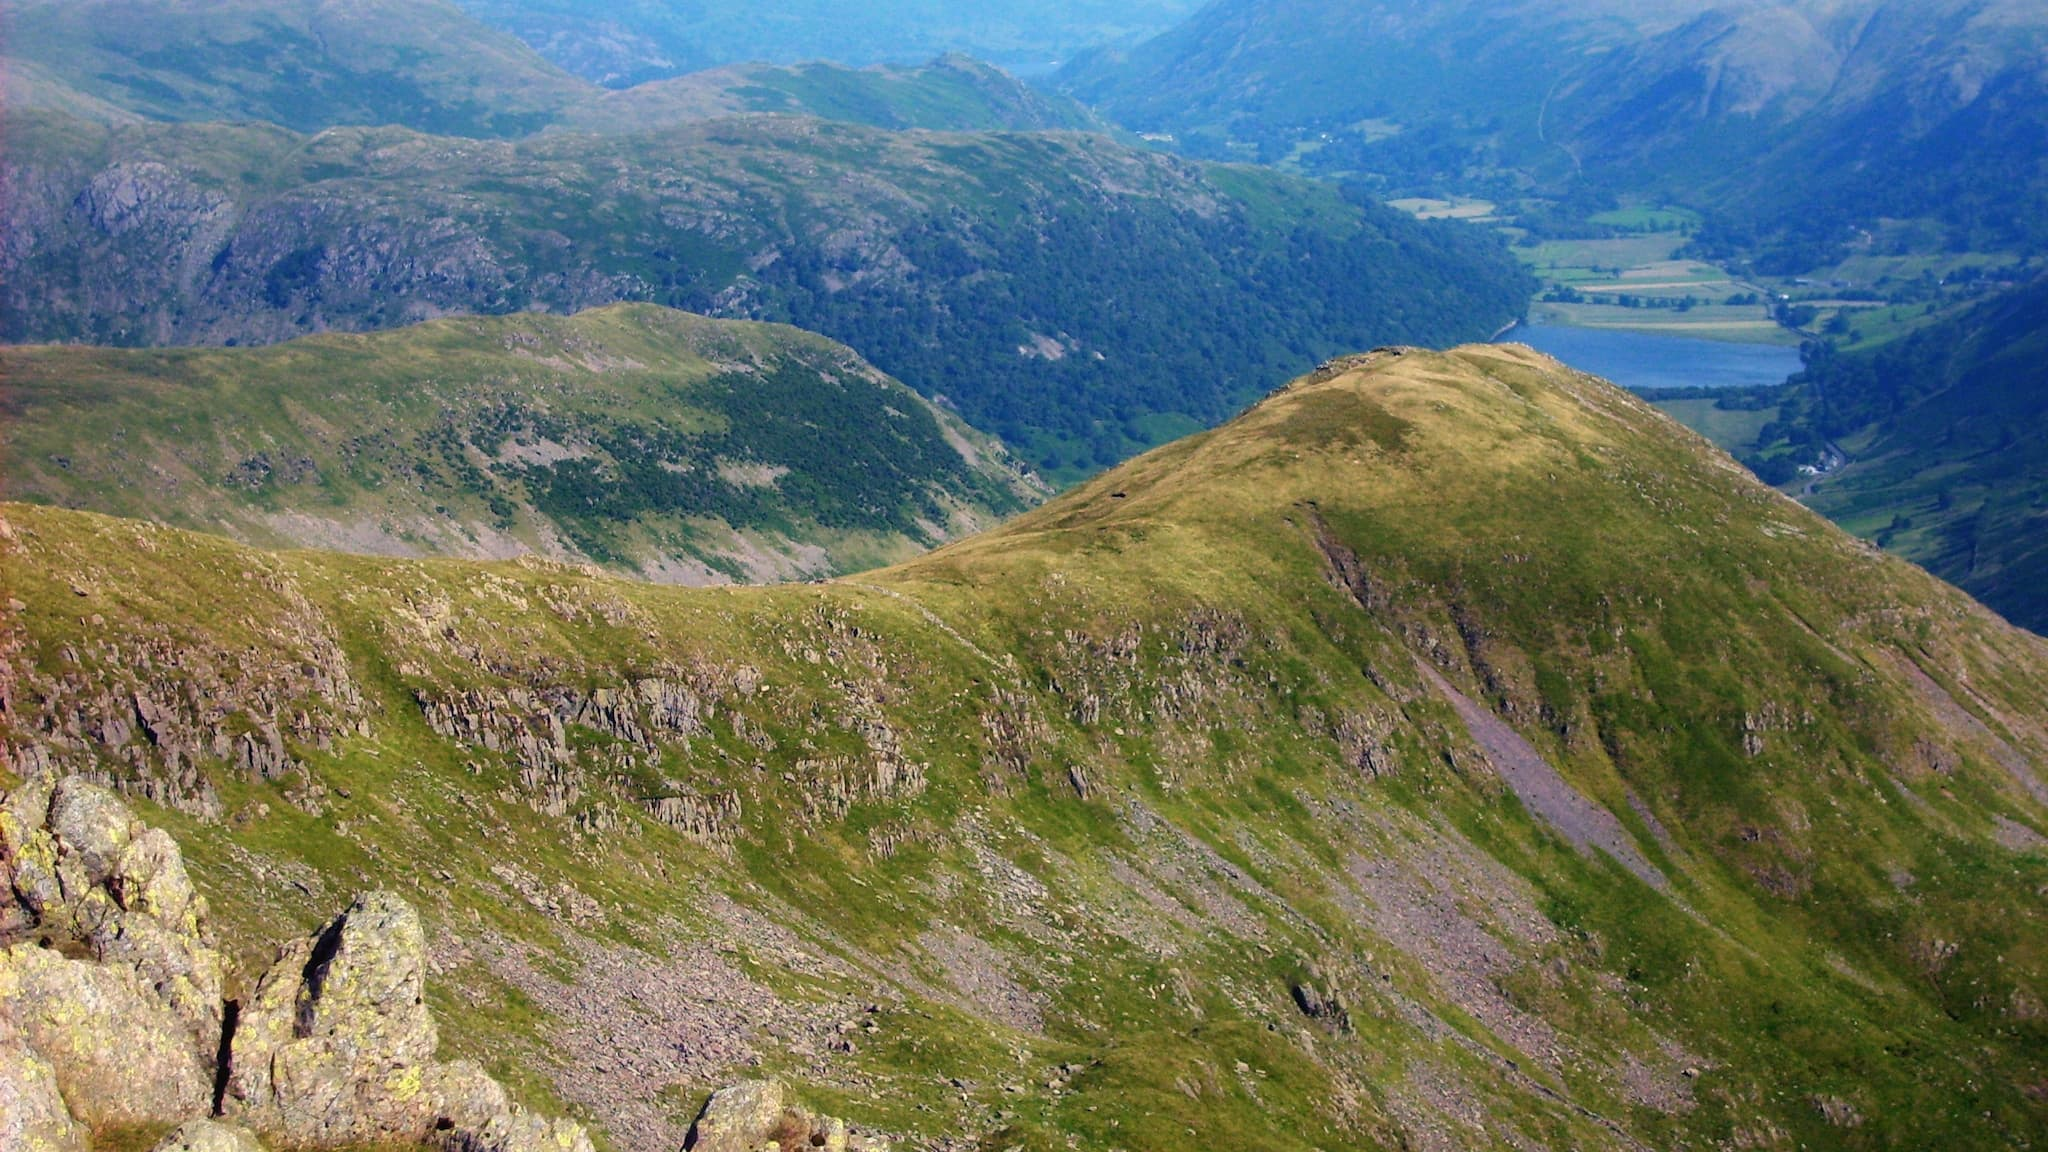 """Middle Dodd from the summit of Red Screes"" by Shane Sykes, licensed CC-by-SA-3.0"